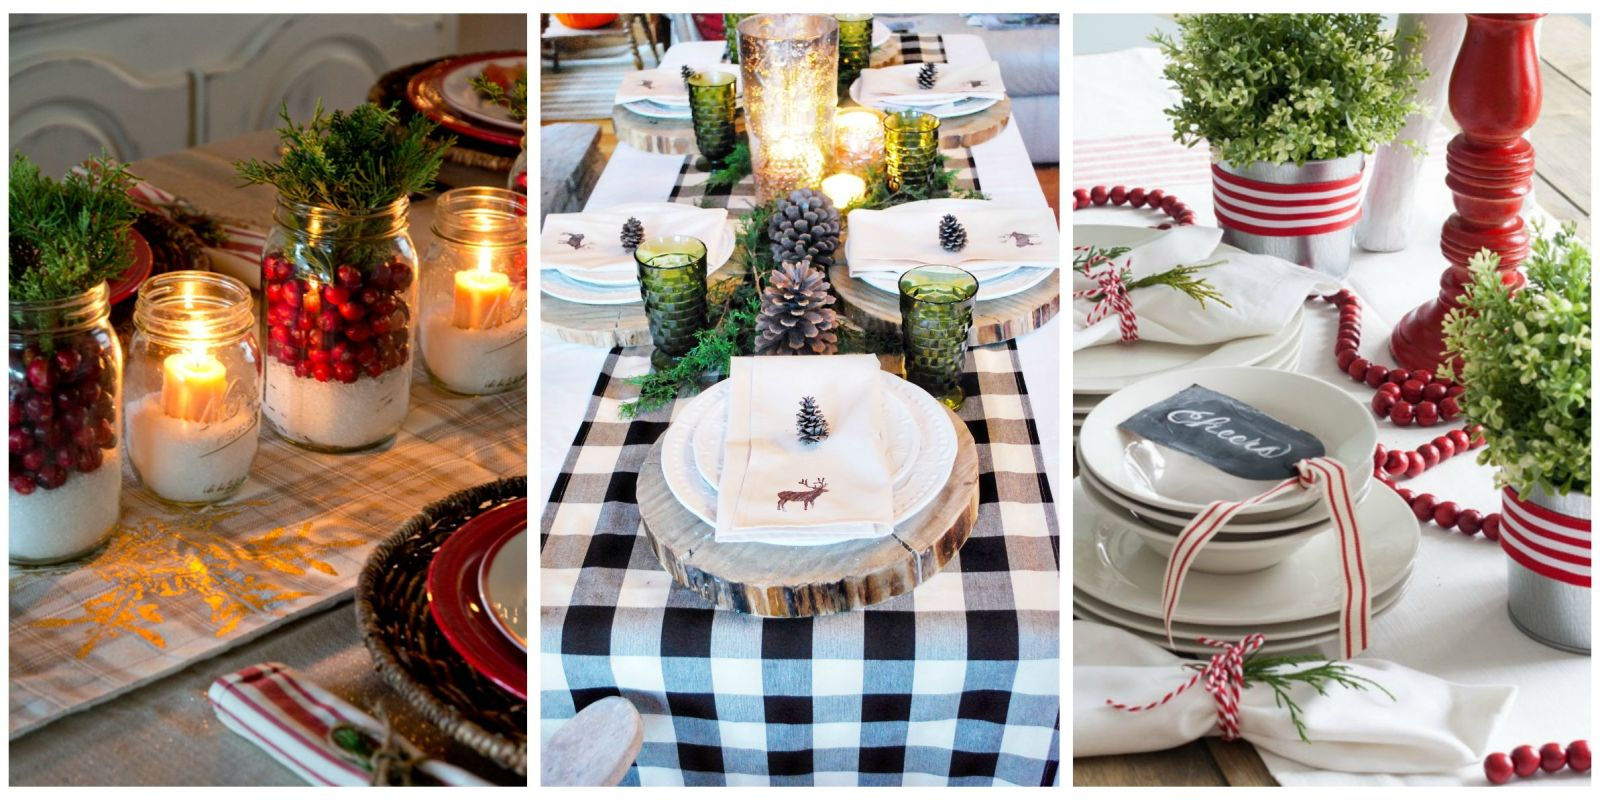 30 christmas table decorations centerpieces ideas for holiday table d - Pinterest deco table ...